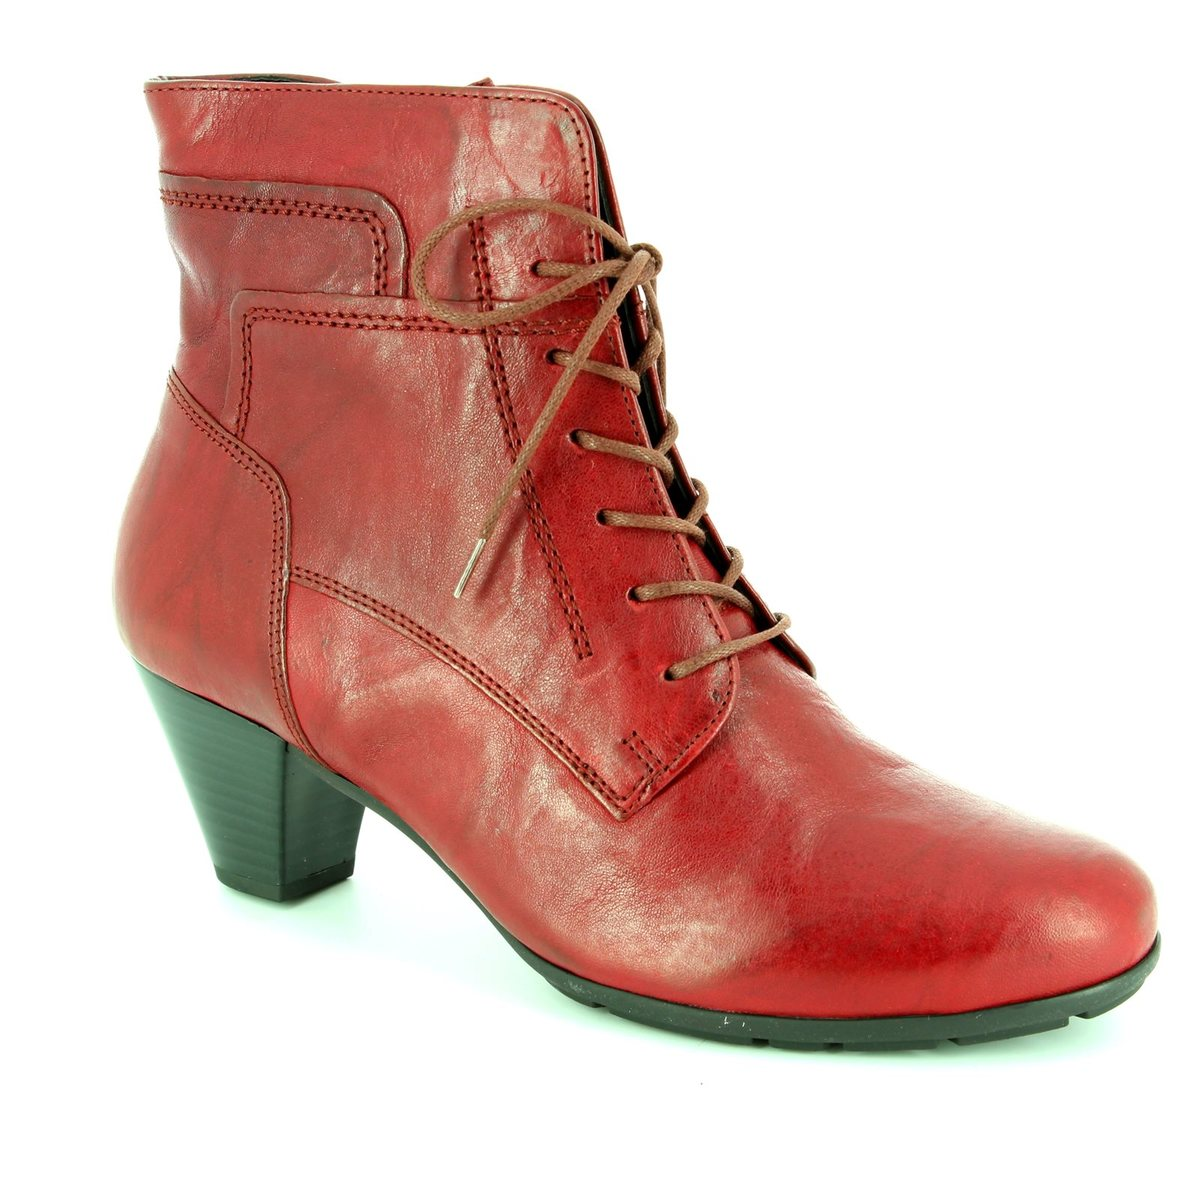 Gabor Ankle Boots - Dark Red - 55.644.55 NATIONAL